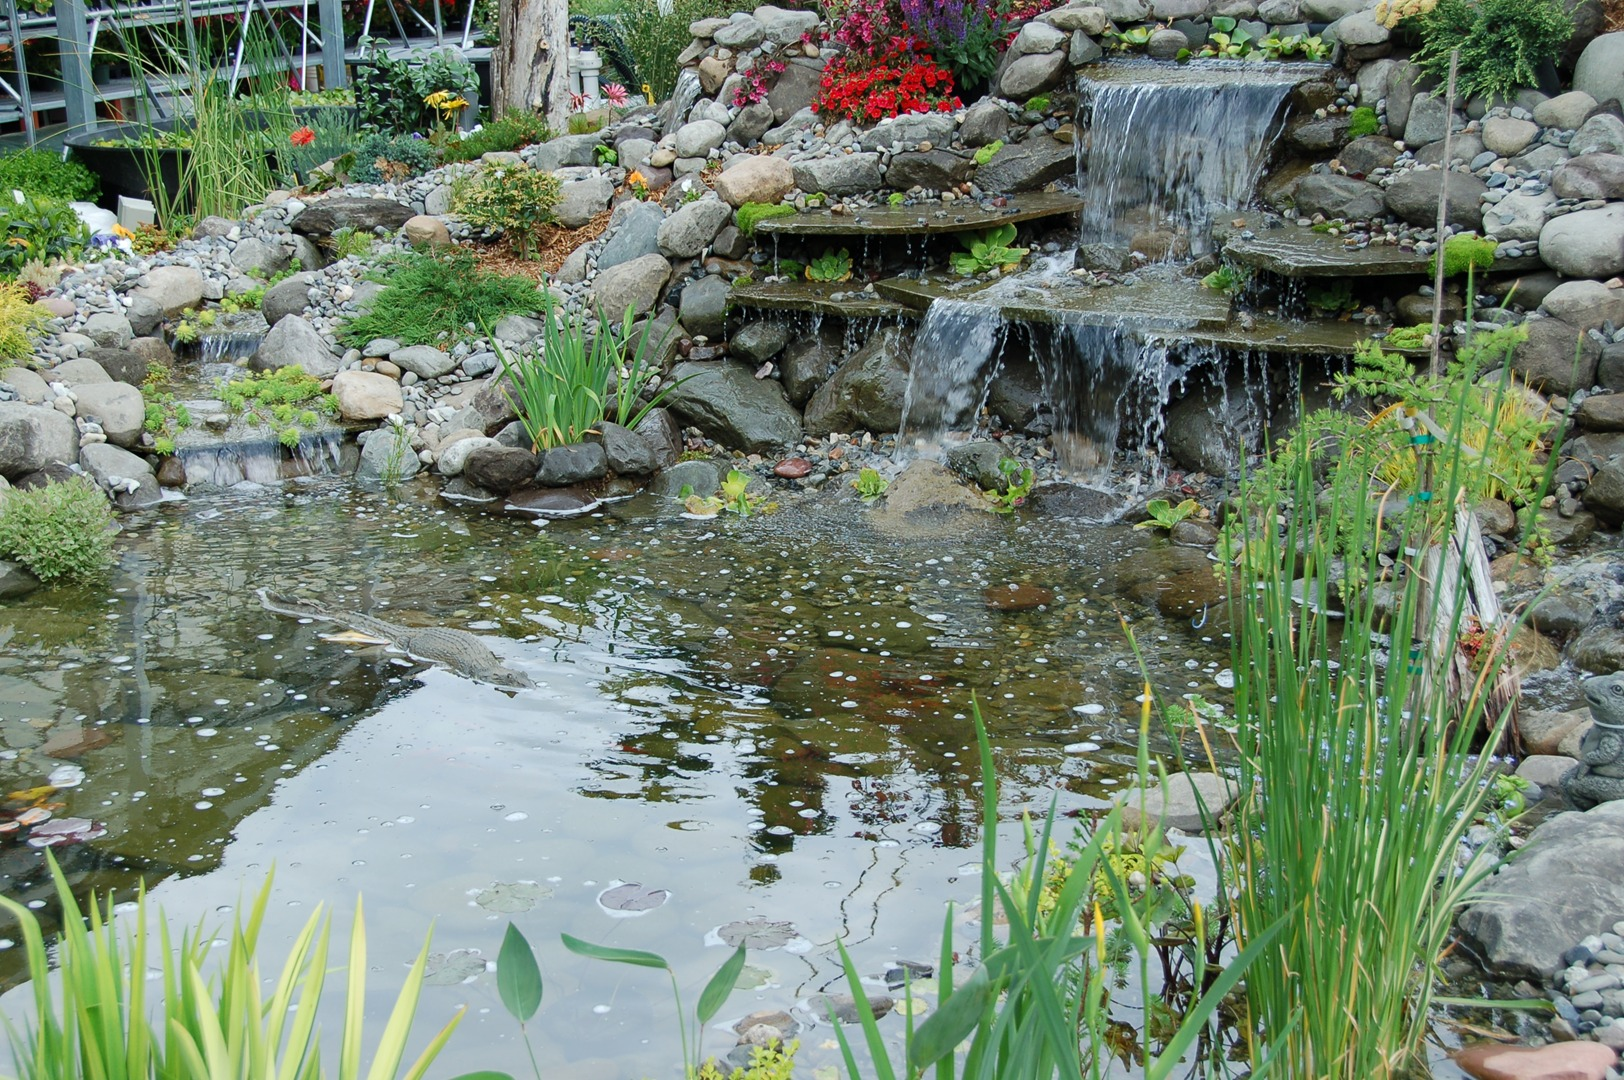 Water Gardening at Fairfield Garden Center